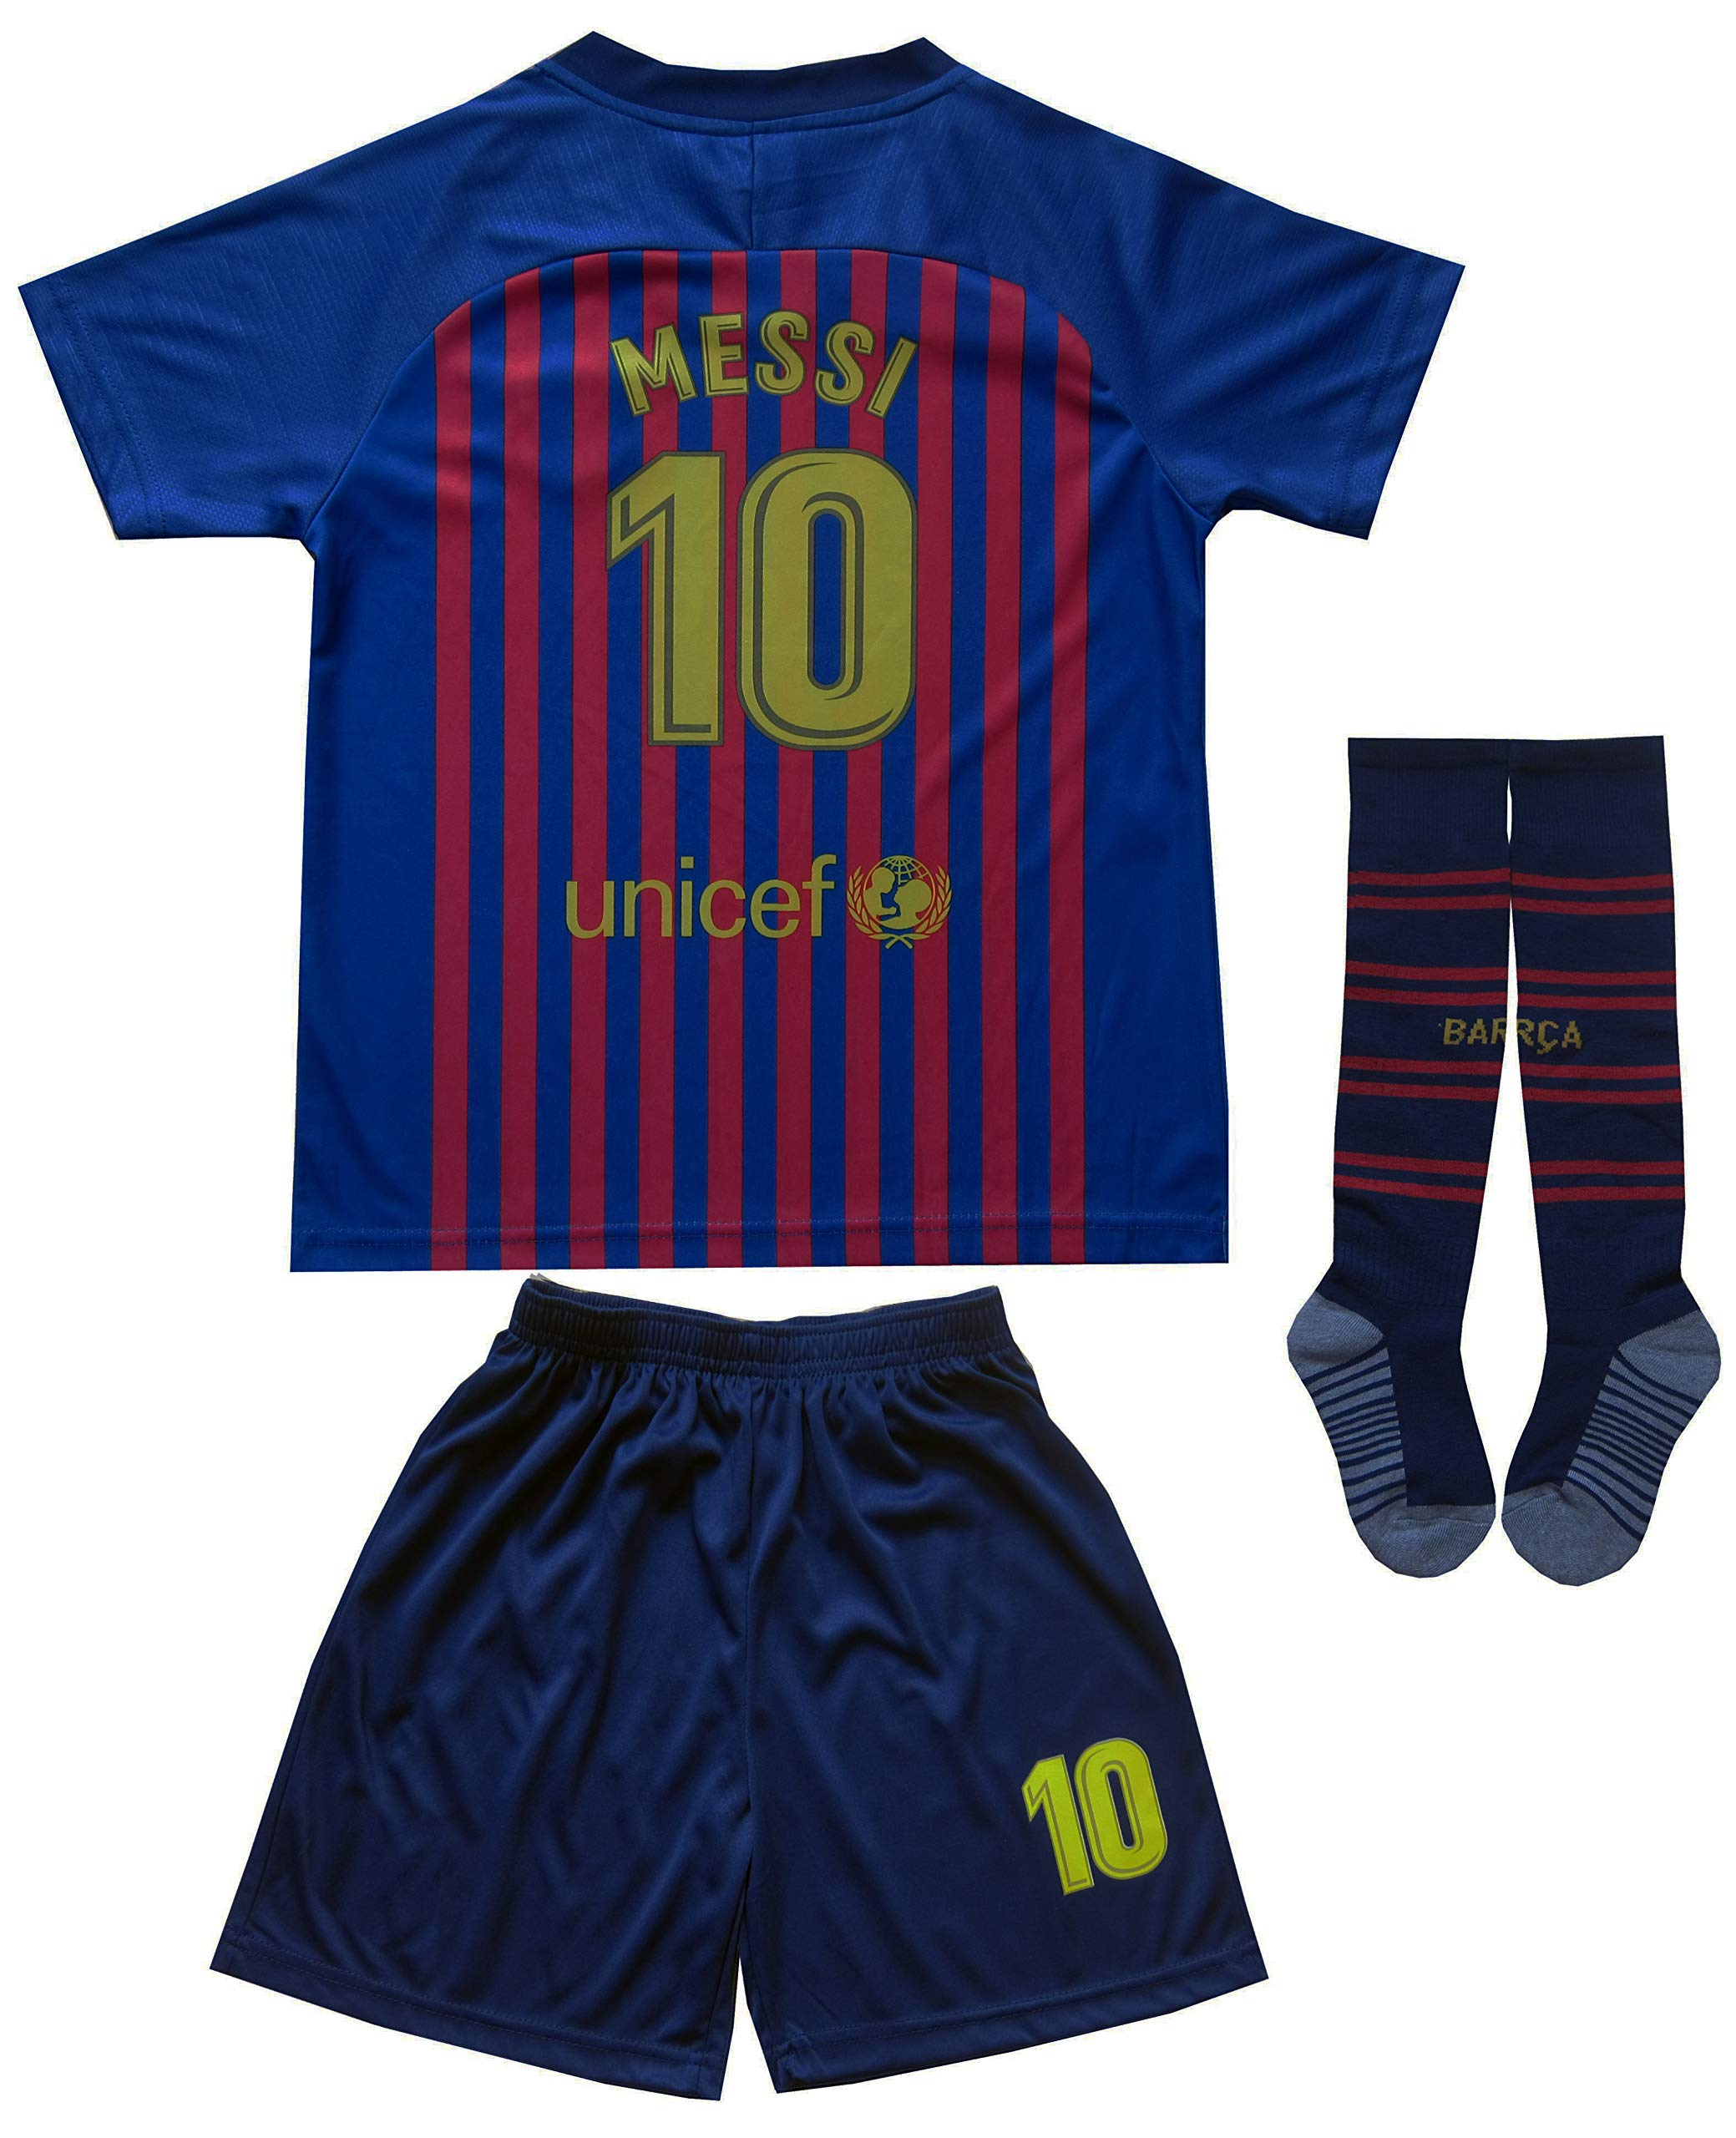 Da Games Youth Sportswear Barcelona Messi 10 Kids Home Soccer Jersey/Shorts Football Socks Set (12-13 YEARS OLD, Home)